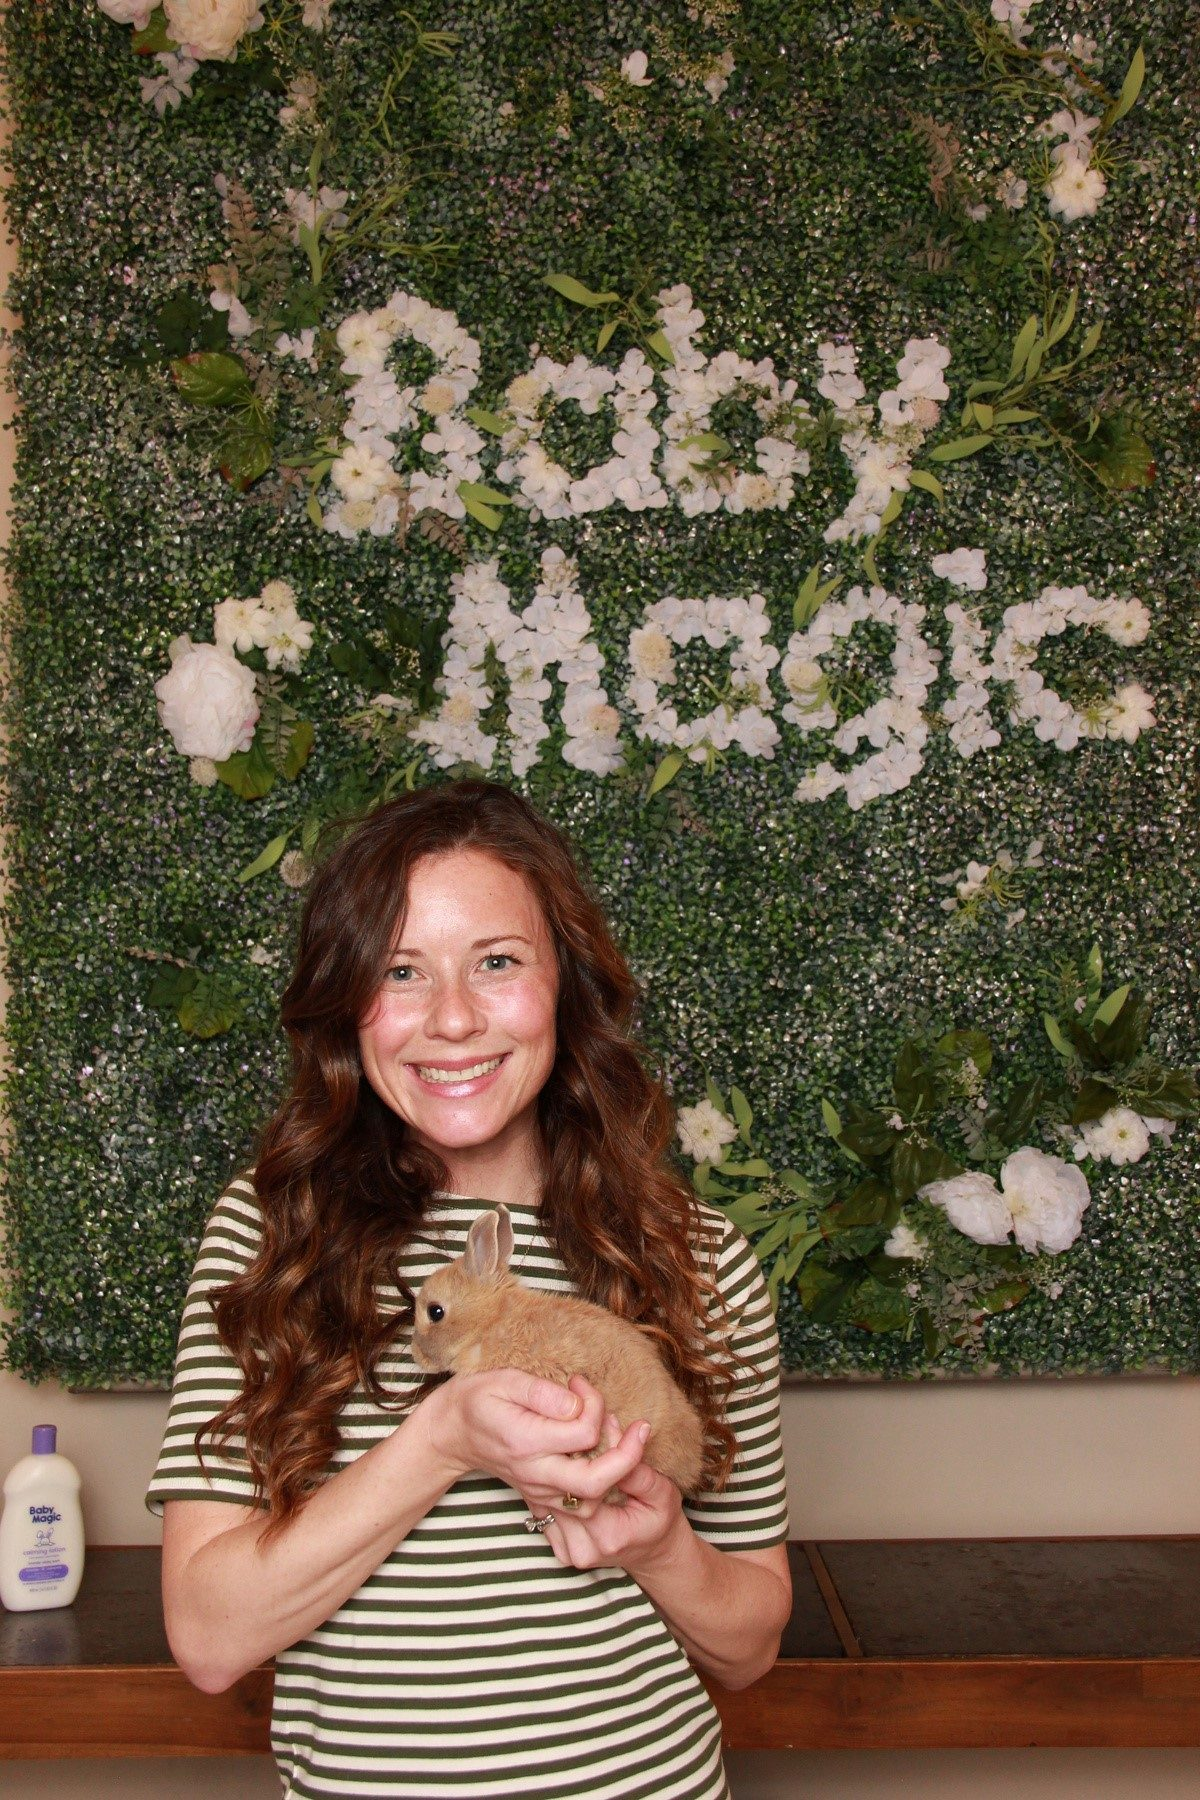 Baby Magic Event Woman wearing green striped shirt holding a baby bunny